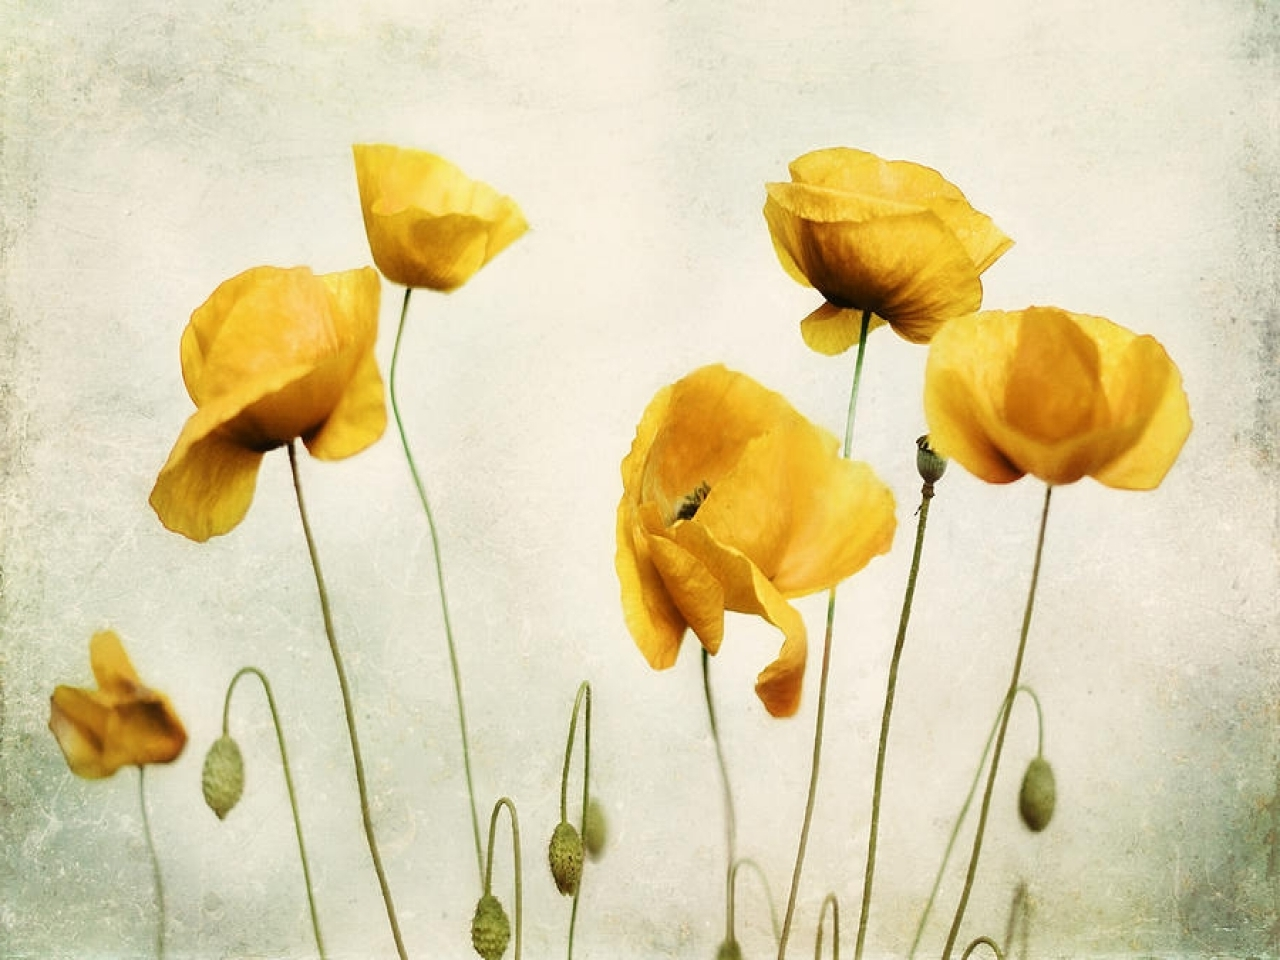 Wall Art Designs: Poppy Wall Art Yellow Poppy Yellow Poppies Wall Pertaining To 2017 Metal Poppy Wall Art (View 11 of 15)